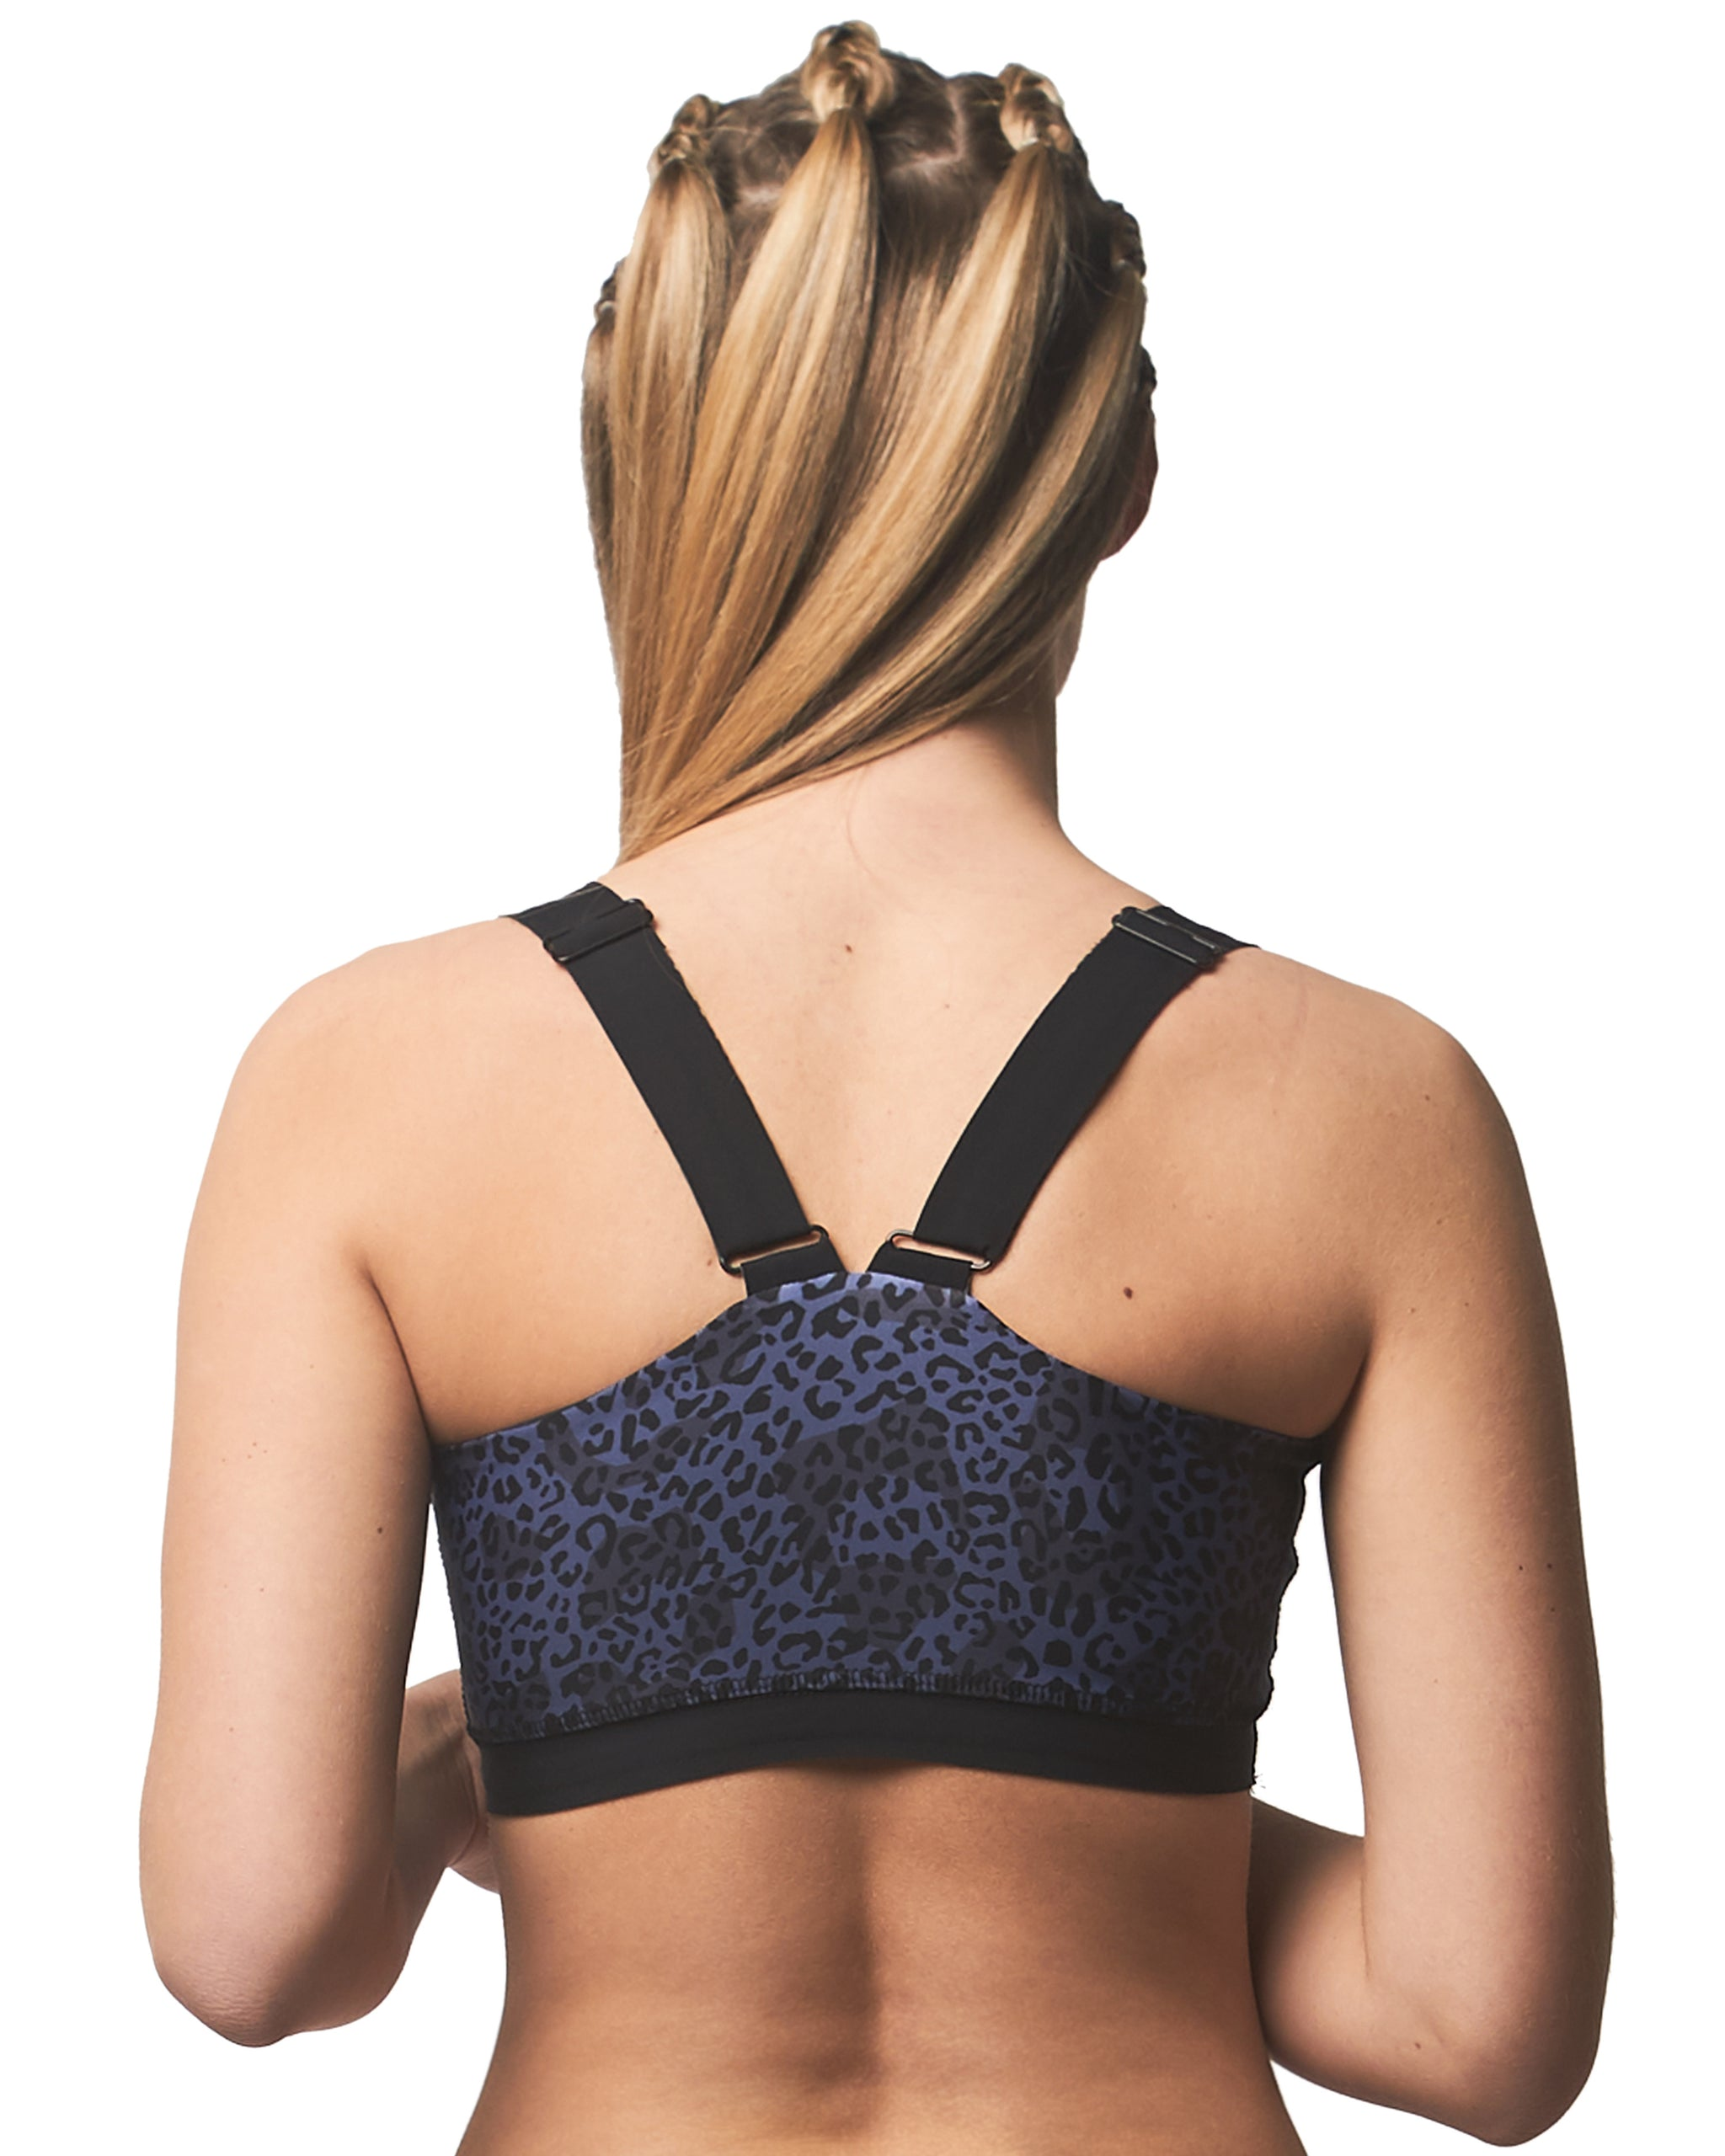 LPRD Midnight Leopard Print Croptop | Back View